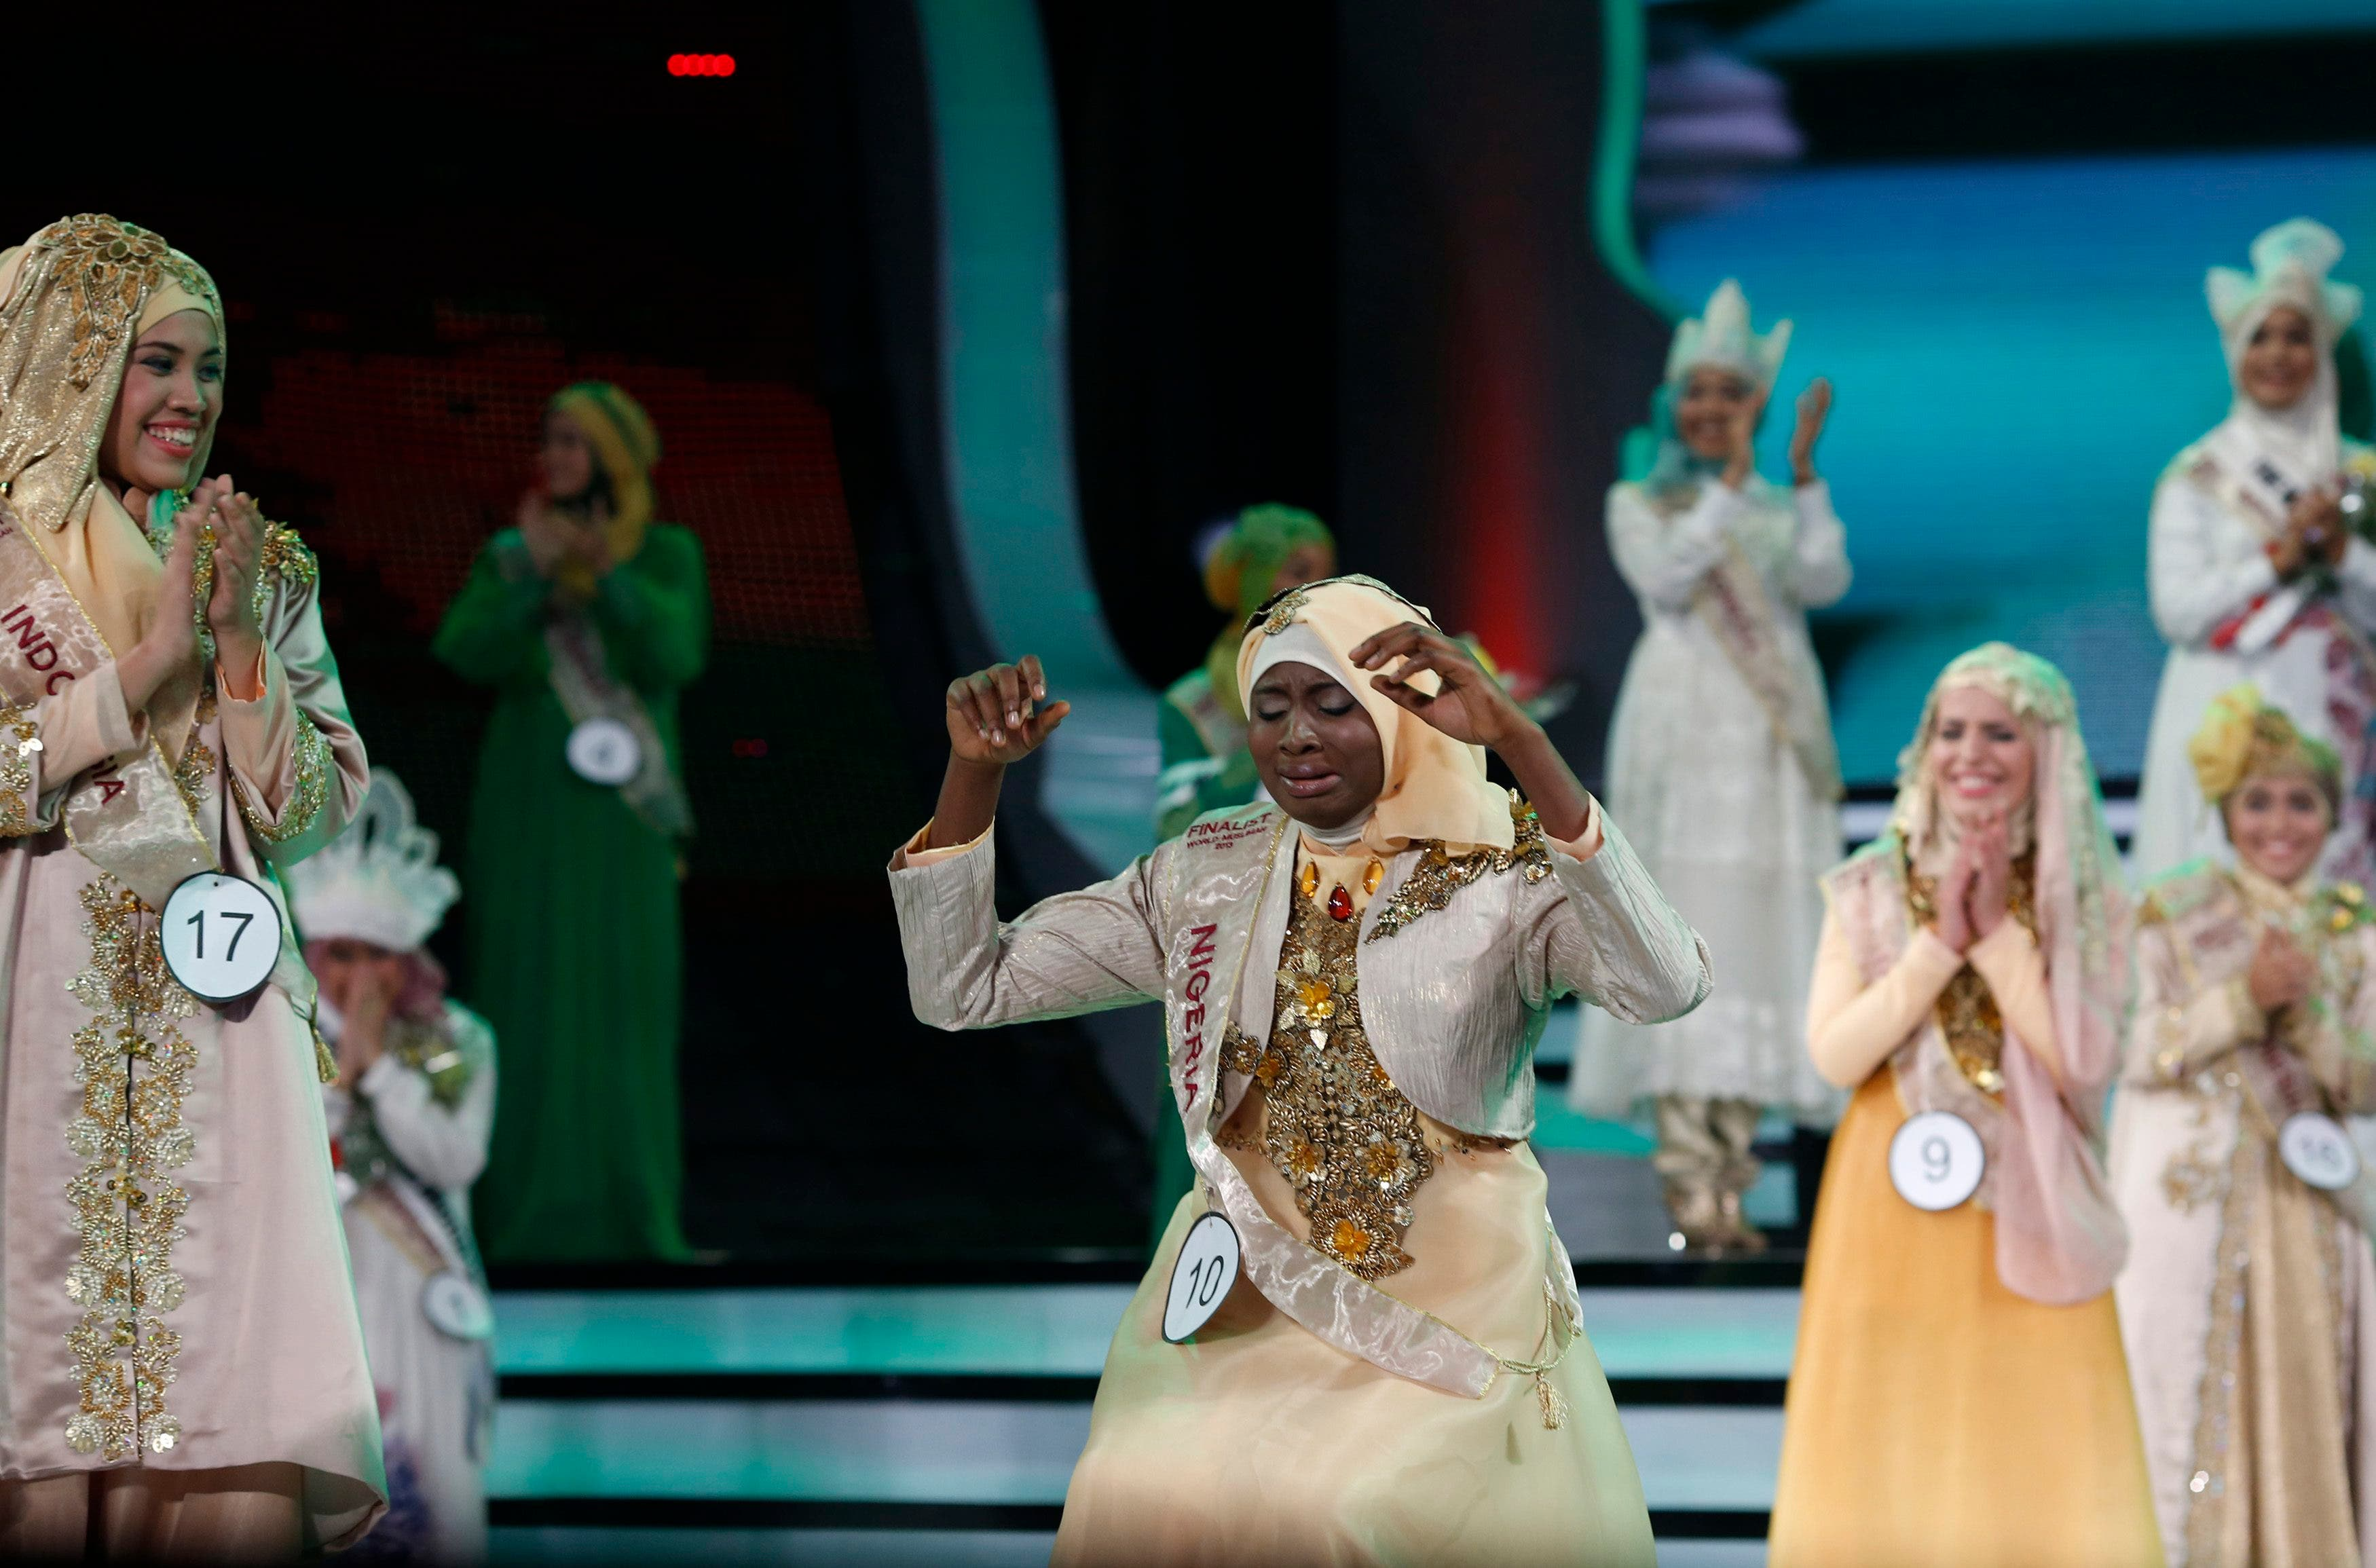 Nigerian Obabiyi Aishah Ajibola (C) reacts after being named World Muslimah 2013 during the third Annual Award of World Muslimah in Jakarta Sept.18, 2013. (Reuters)